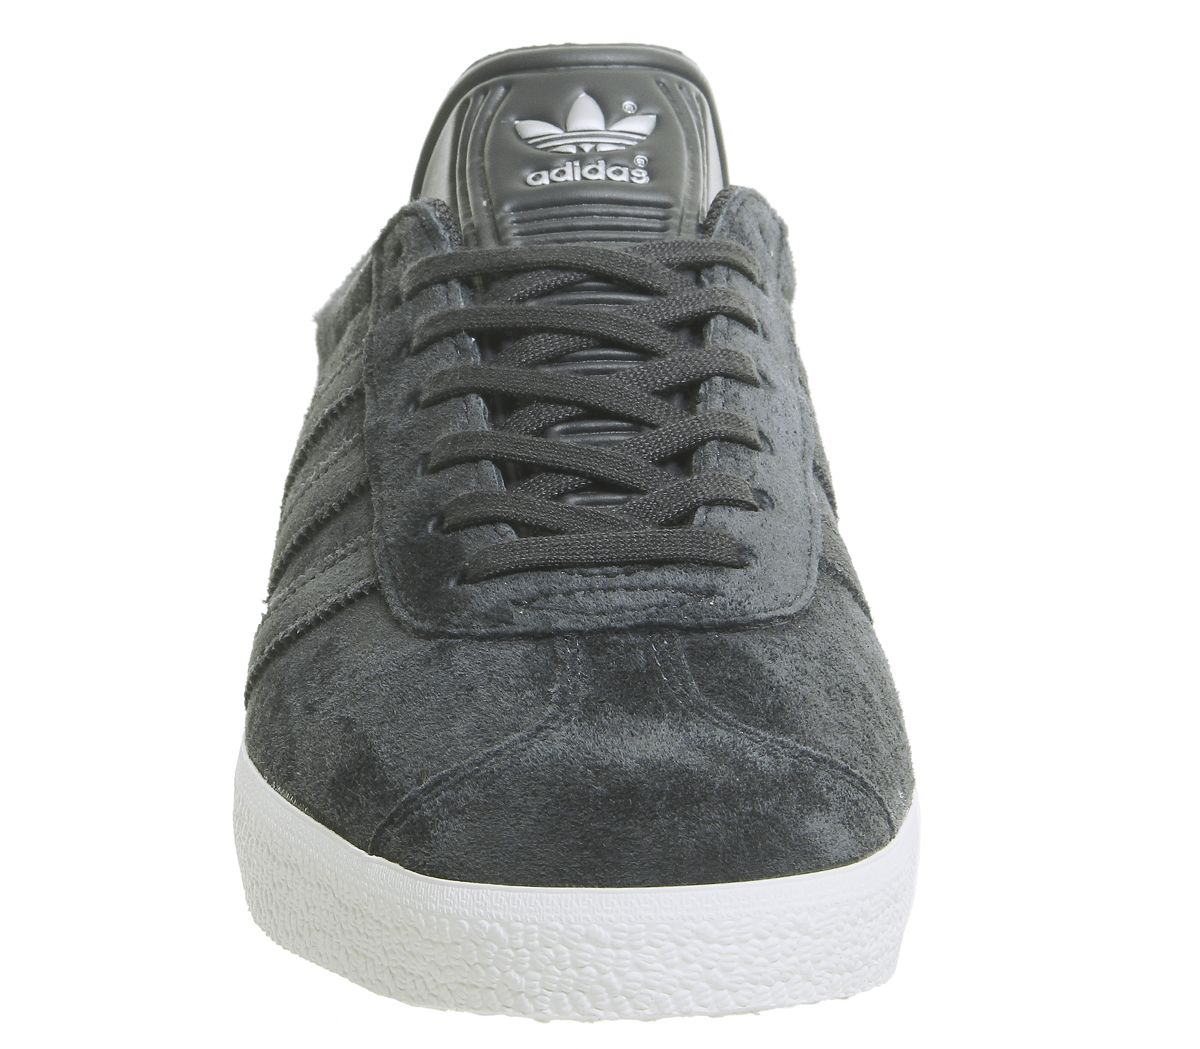 18858ad5 adidas Gazelle Trainers Night Grey Carbon Silver Exclusive - Unisex ...